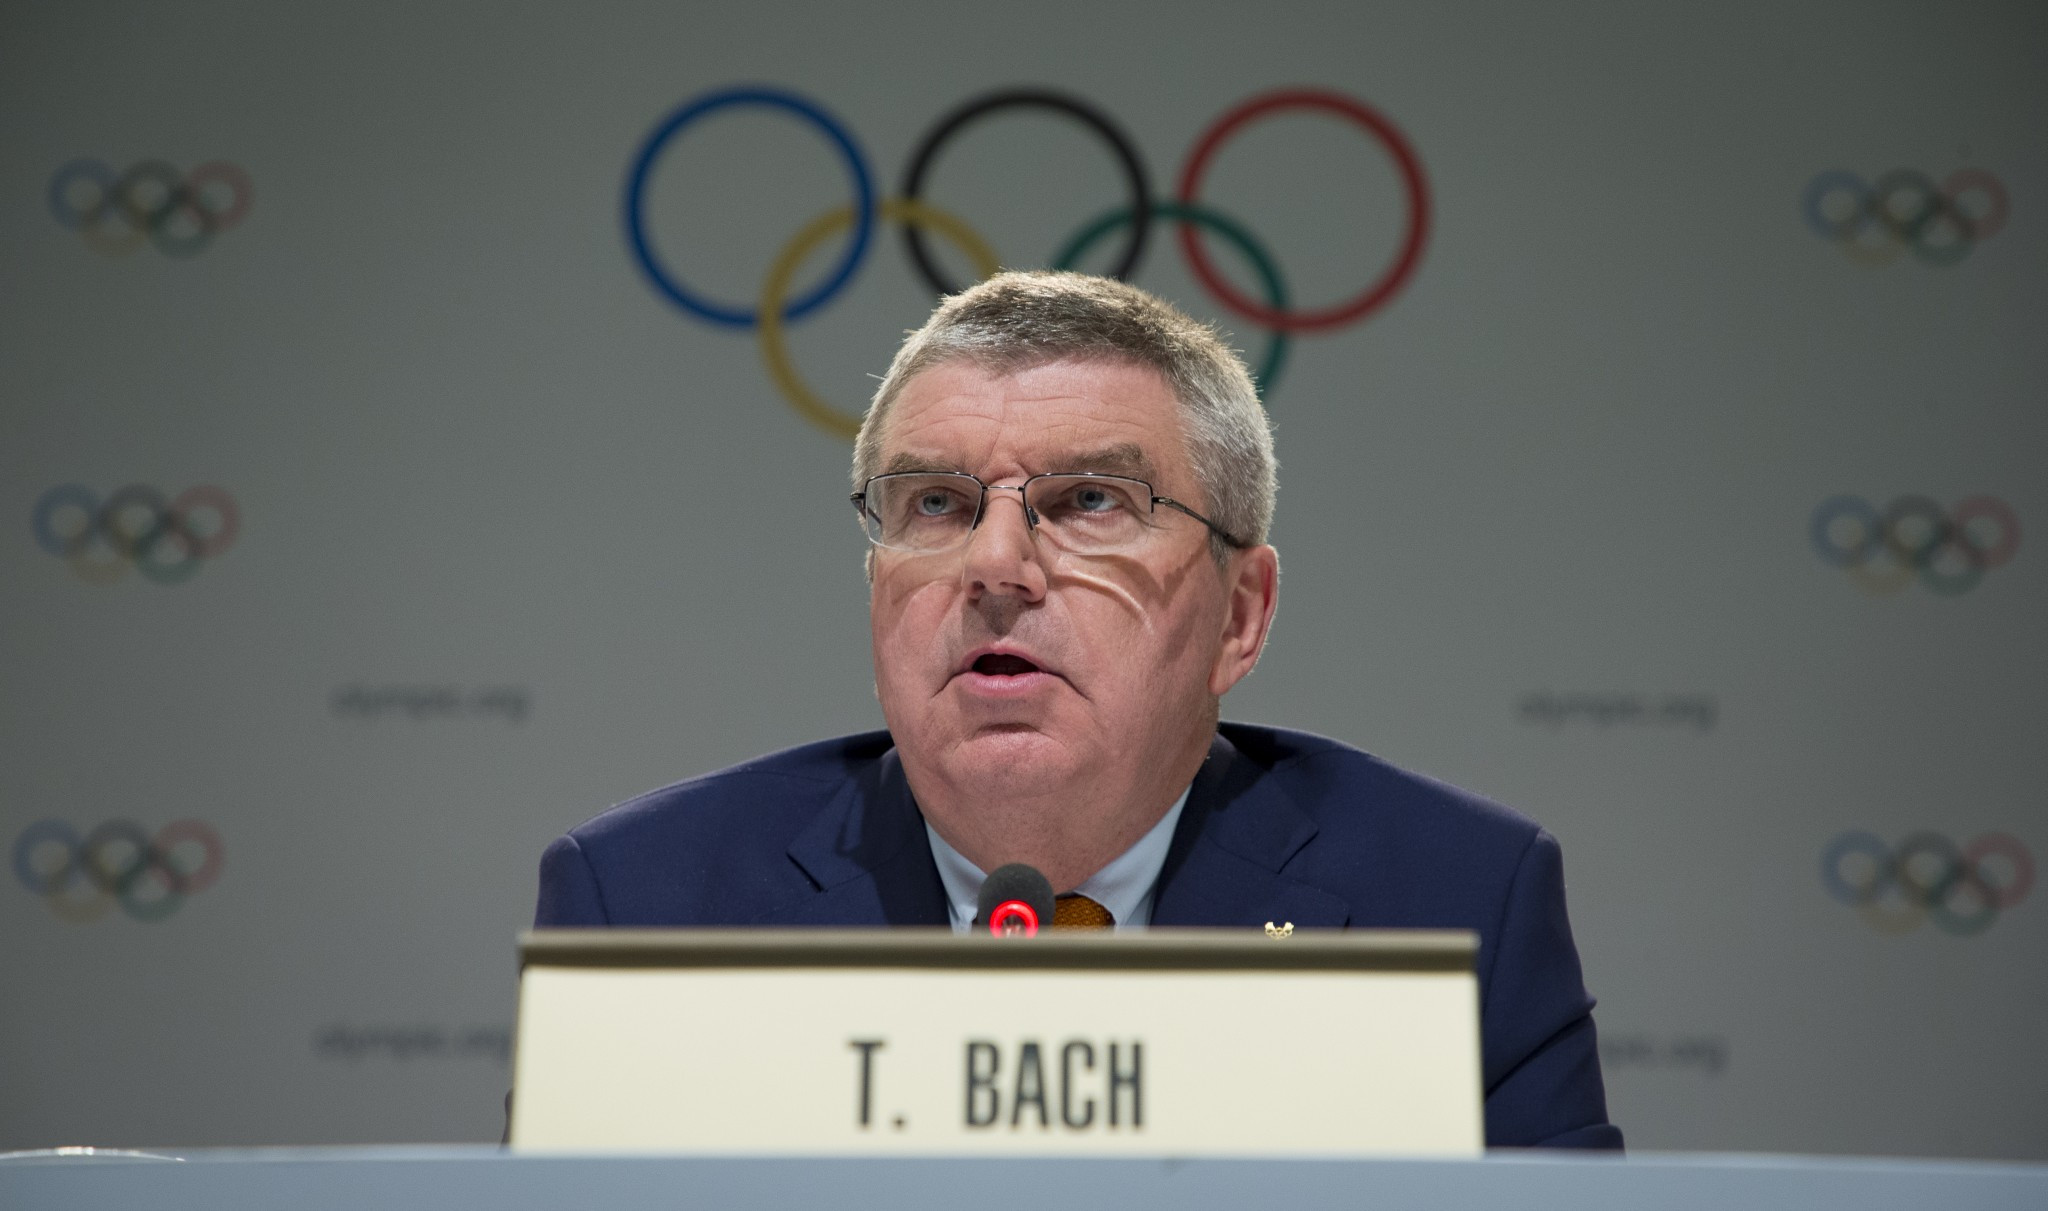 Paris 2024 and Los Angeles 2028 in relaxed mood but Bach faces questions over IOC corruption